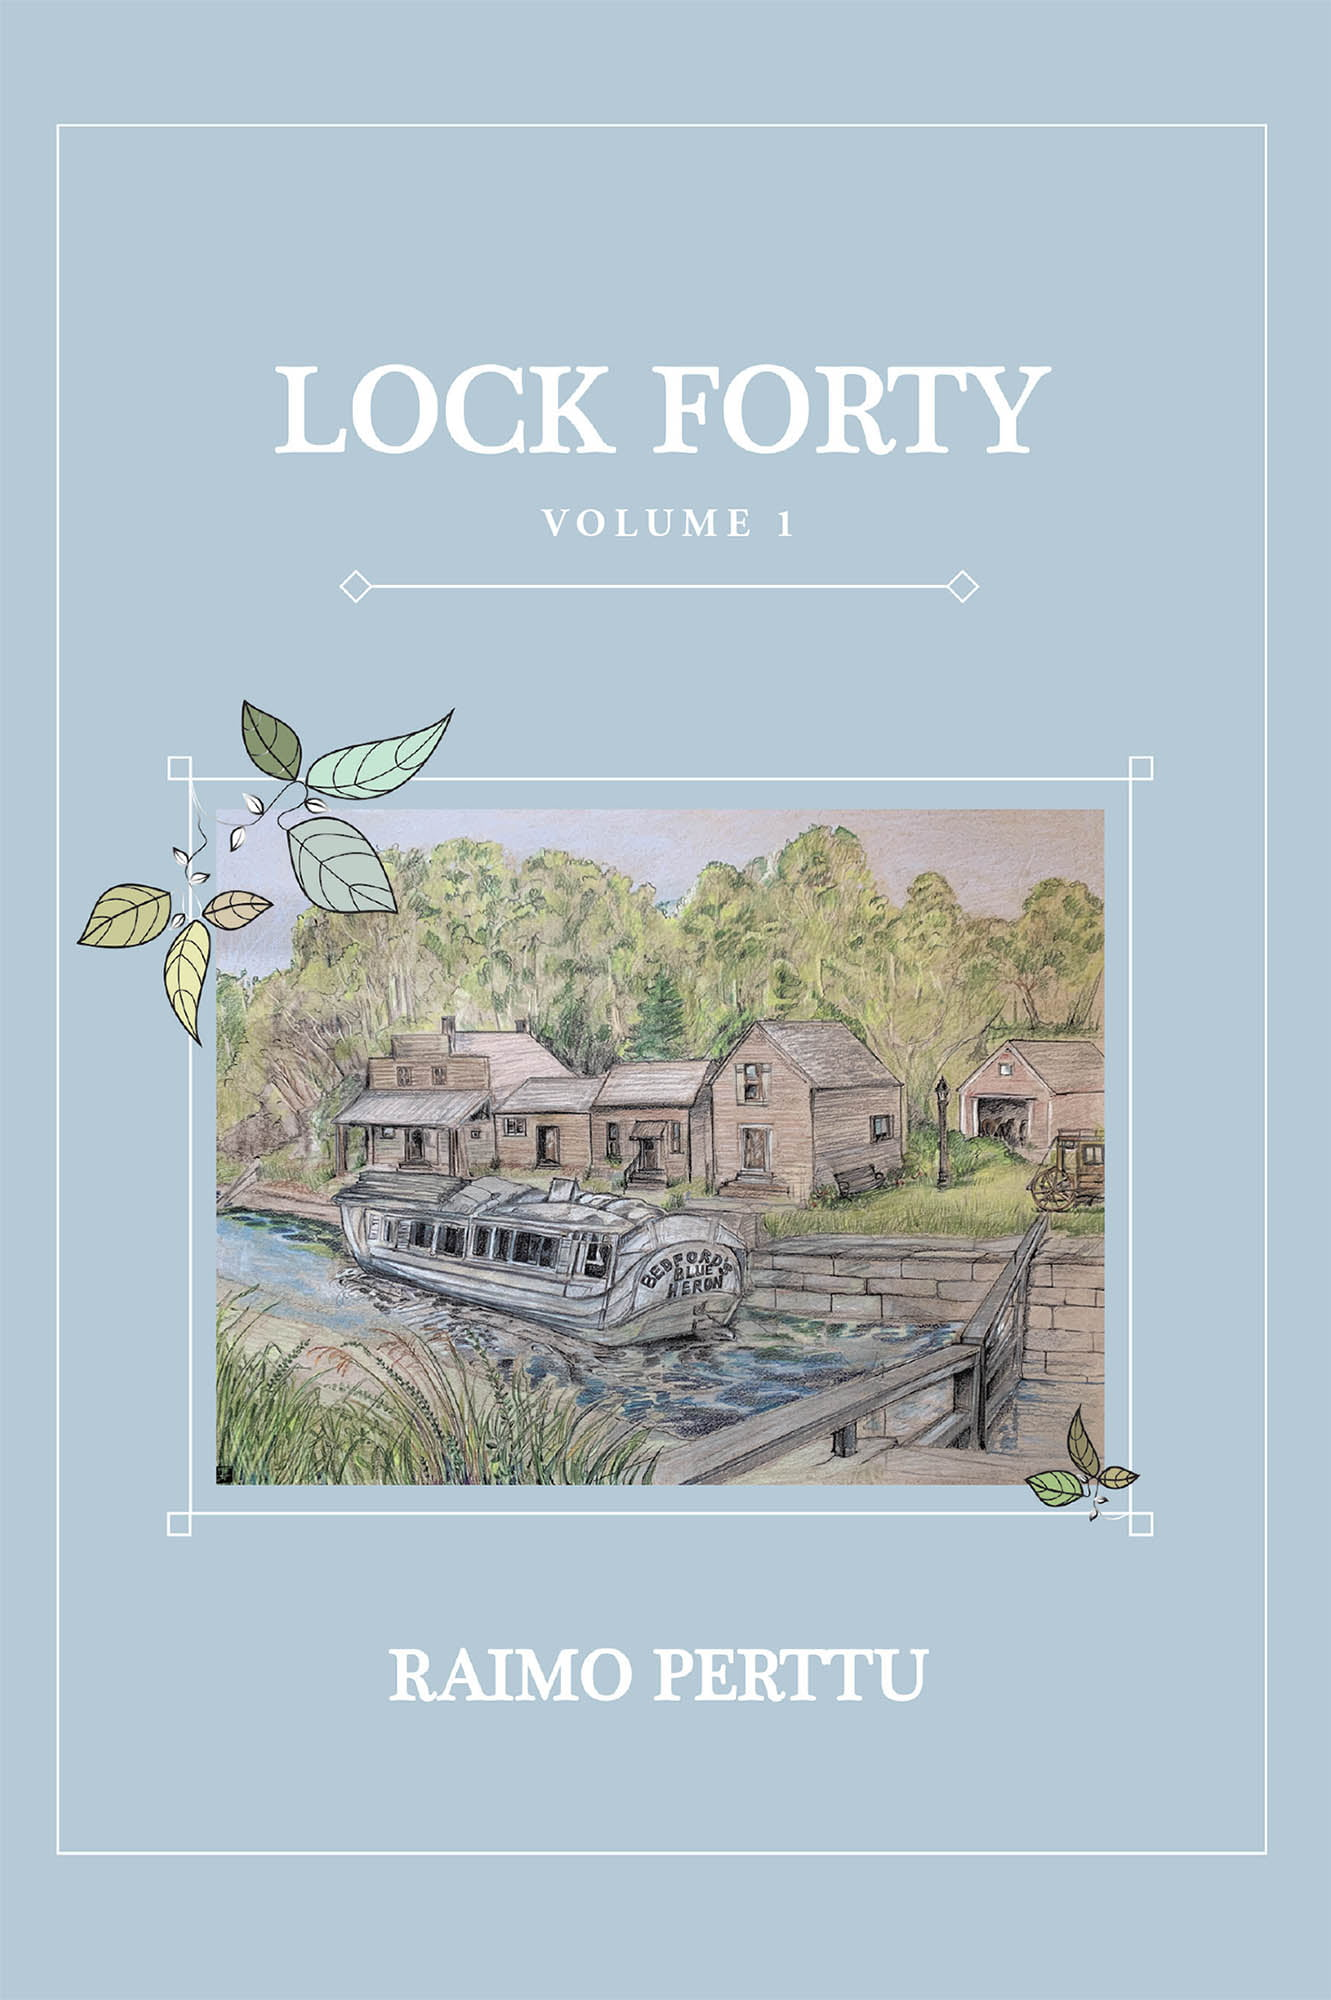 Raimo Perttu's New Book 'Lock Forty' Chronicles A Family Saga During The Decline Of The Canaling Business in Competition With The Advent Of The Railroad